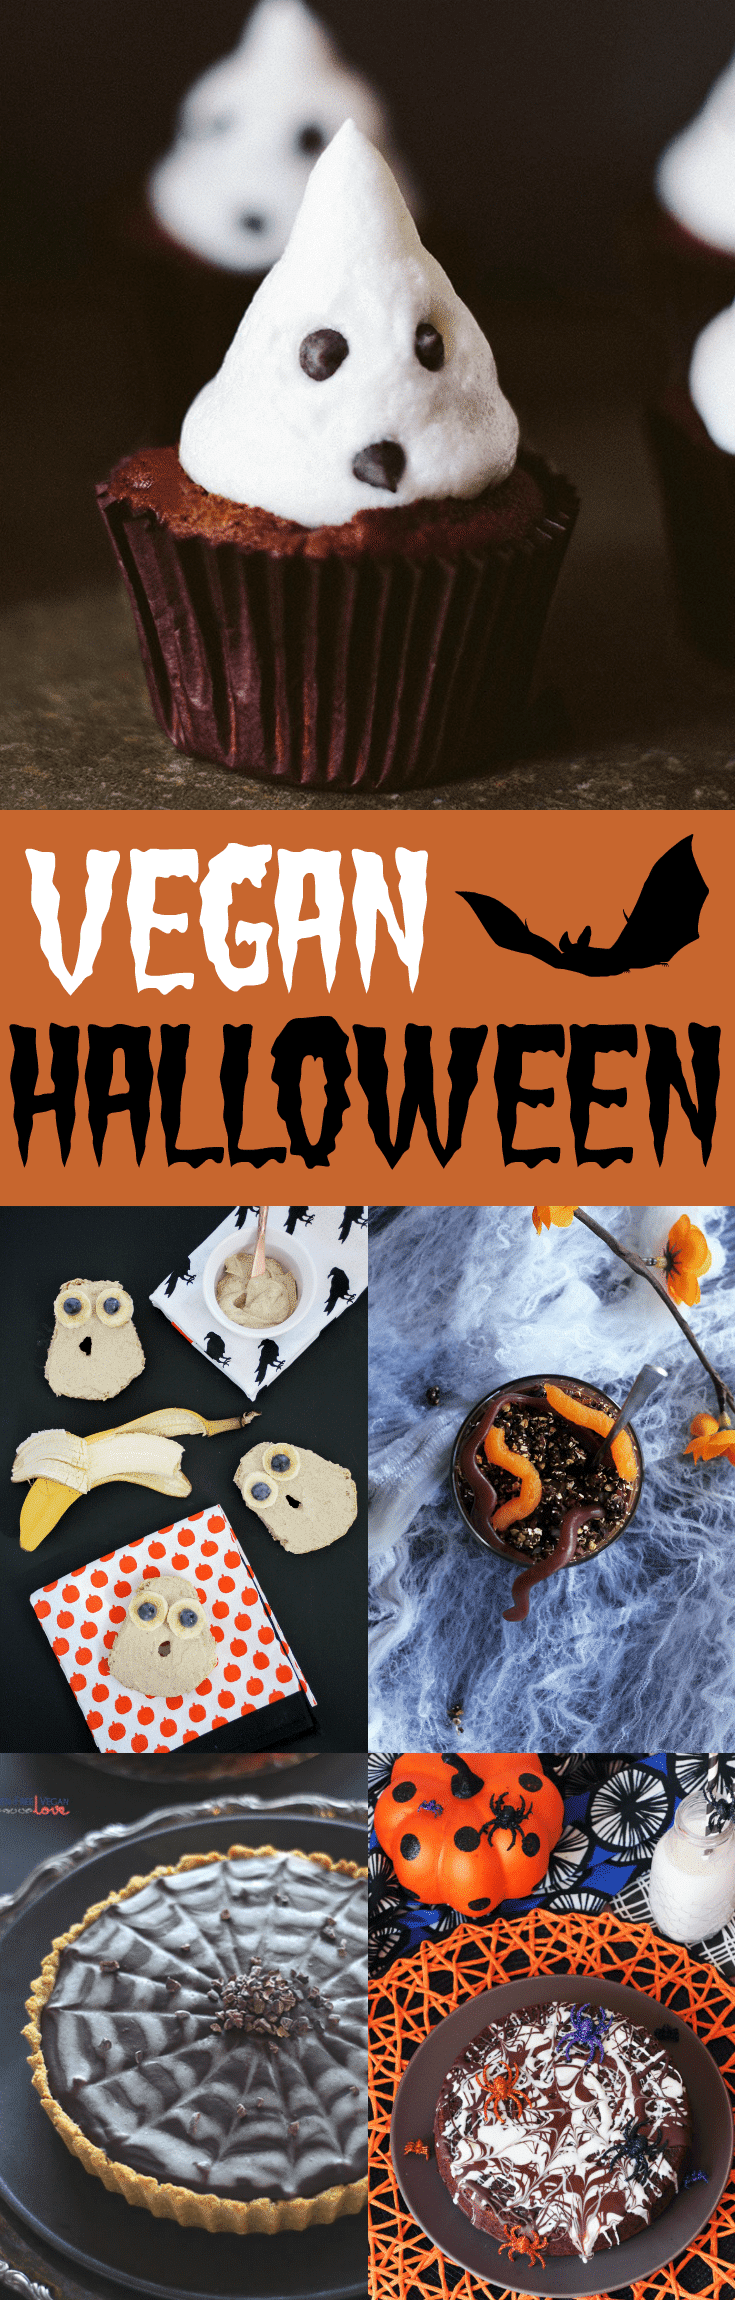 13 Spooky Vegan Halloween Recipes